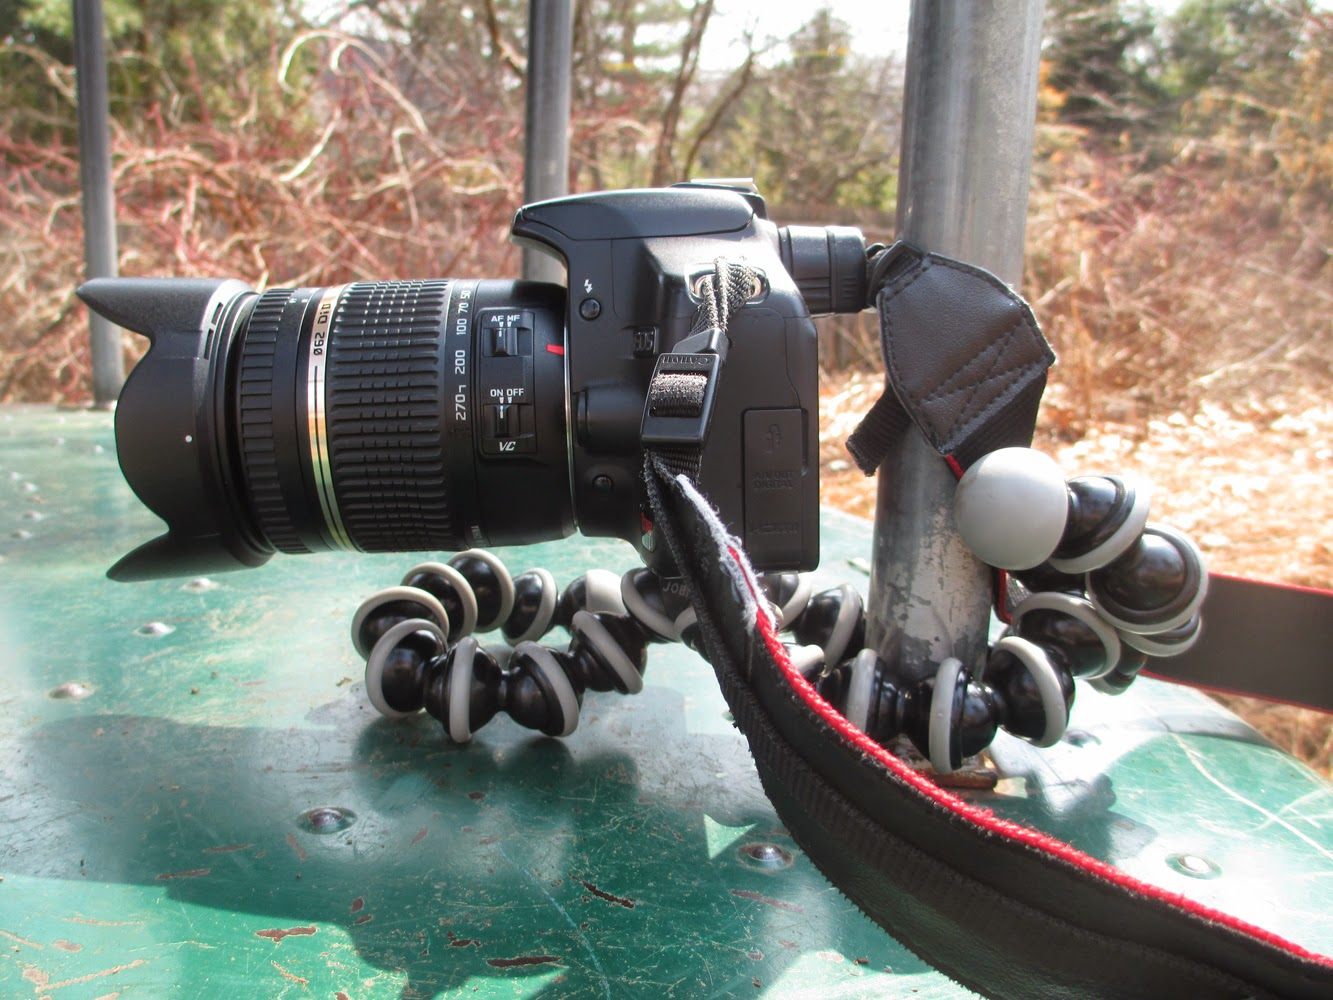 GorillaPod Merry-Go-Round Setup | Boost Your Photography